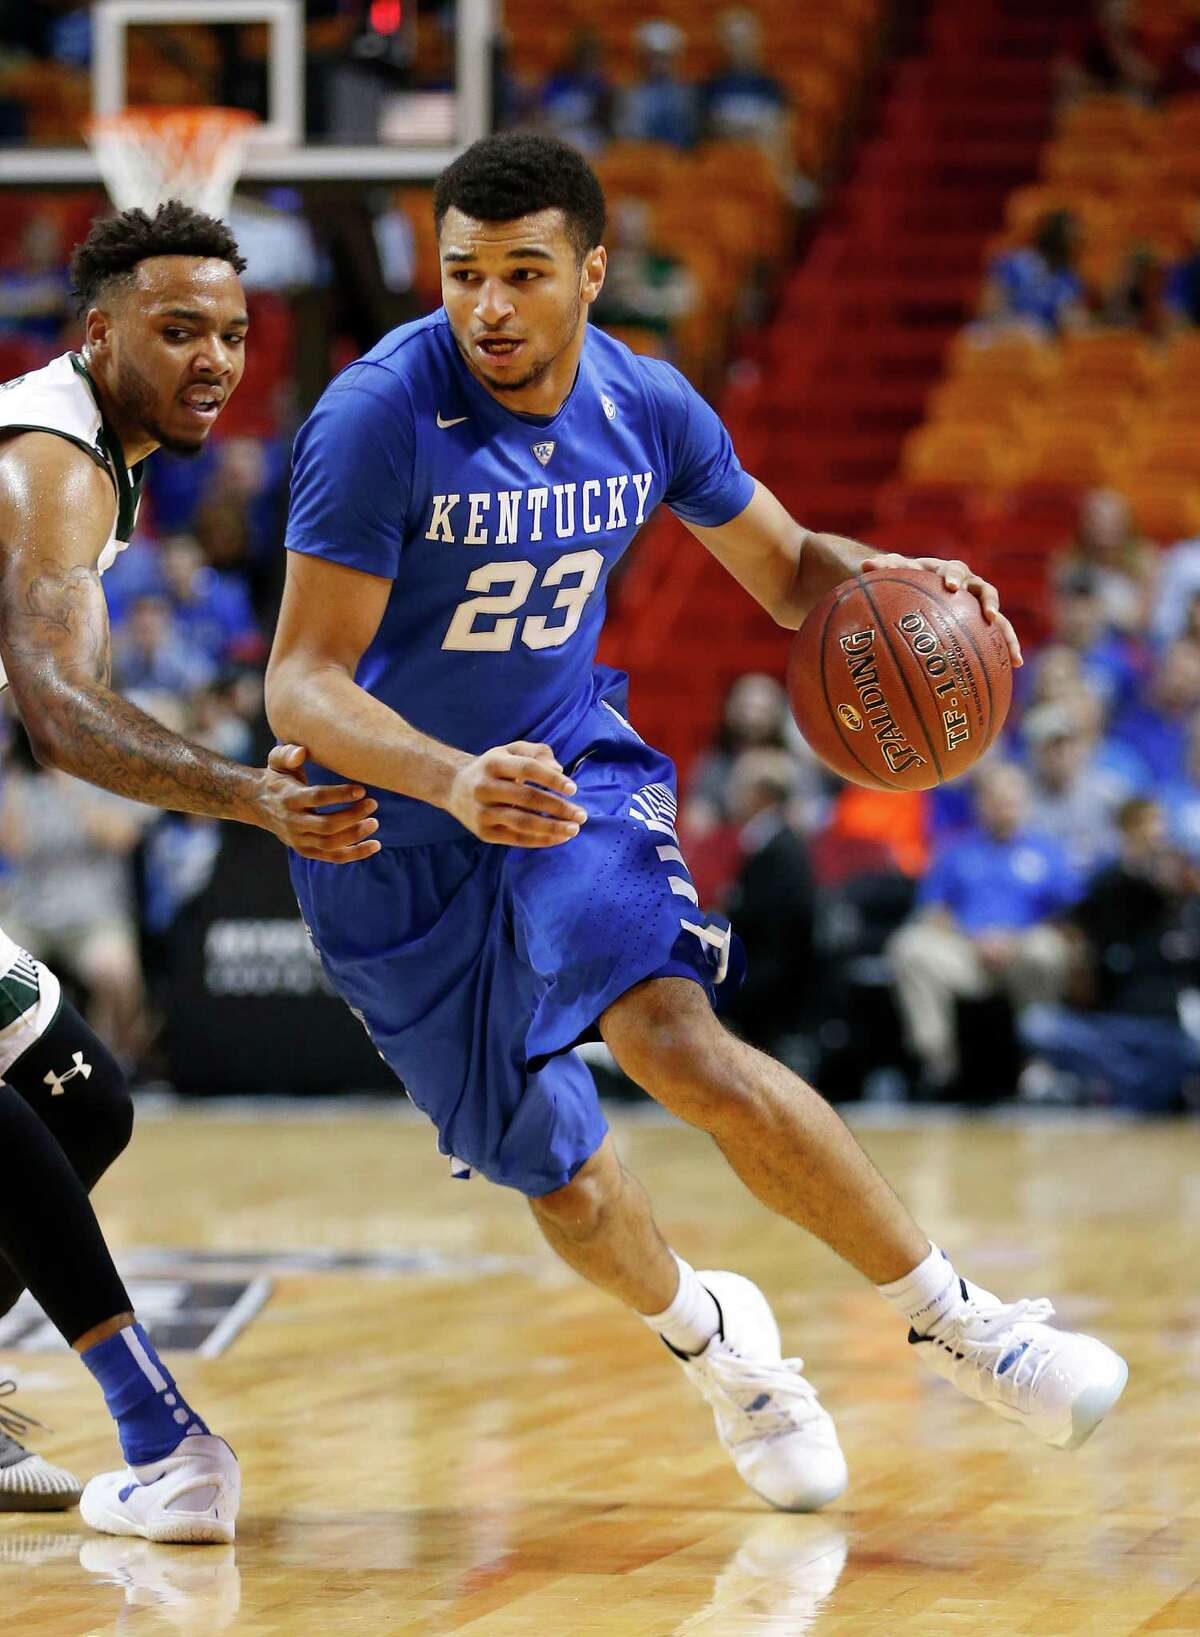 MIAMI, FL - NOVEMBER 27: Jamal Murray #23 of the Kentucky Wildcats dribbles to the basket during first half action against the South Florida Bulls on November 27, 2015 at the American Airlines Arena in Miami, Florida. (Photo by Joel Auerbach/Getty Images) ORG XMIT: 592679991